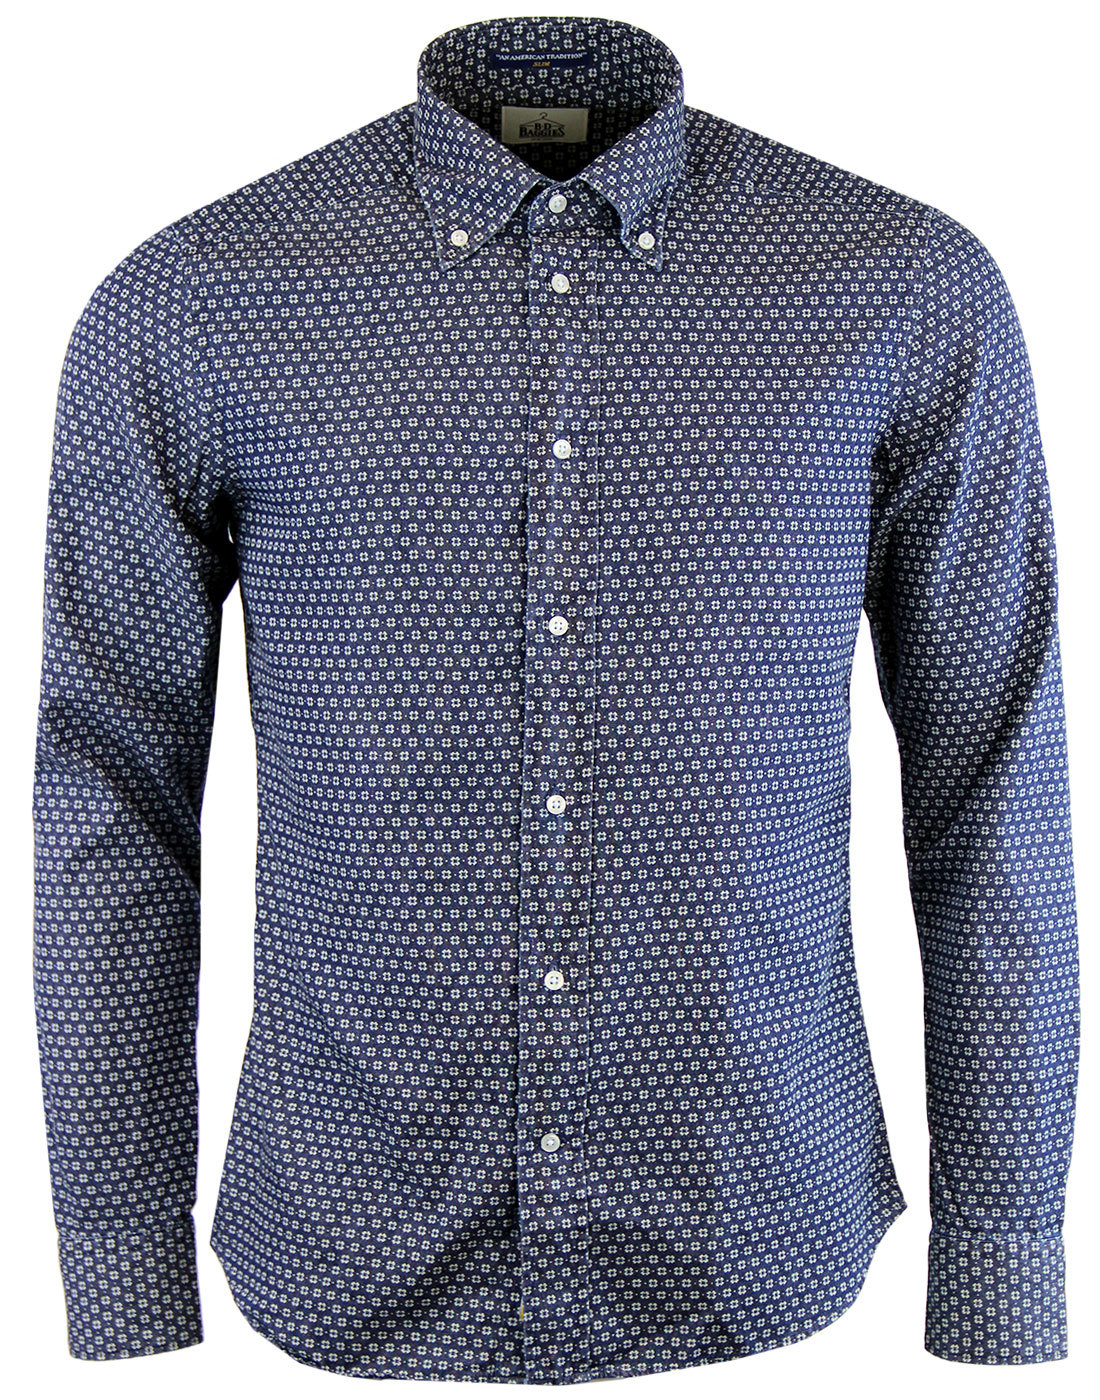 Dexter B D BAGGIES Retro Mod Floral Pin Dot Shirt